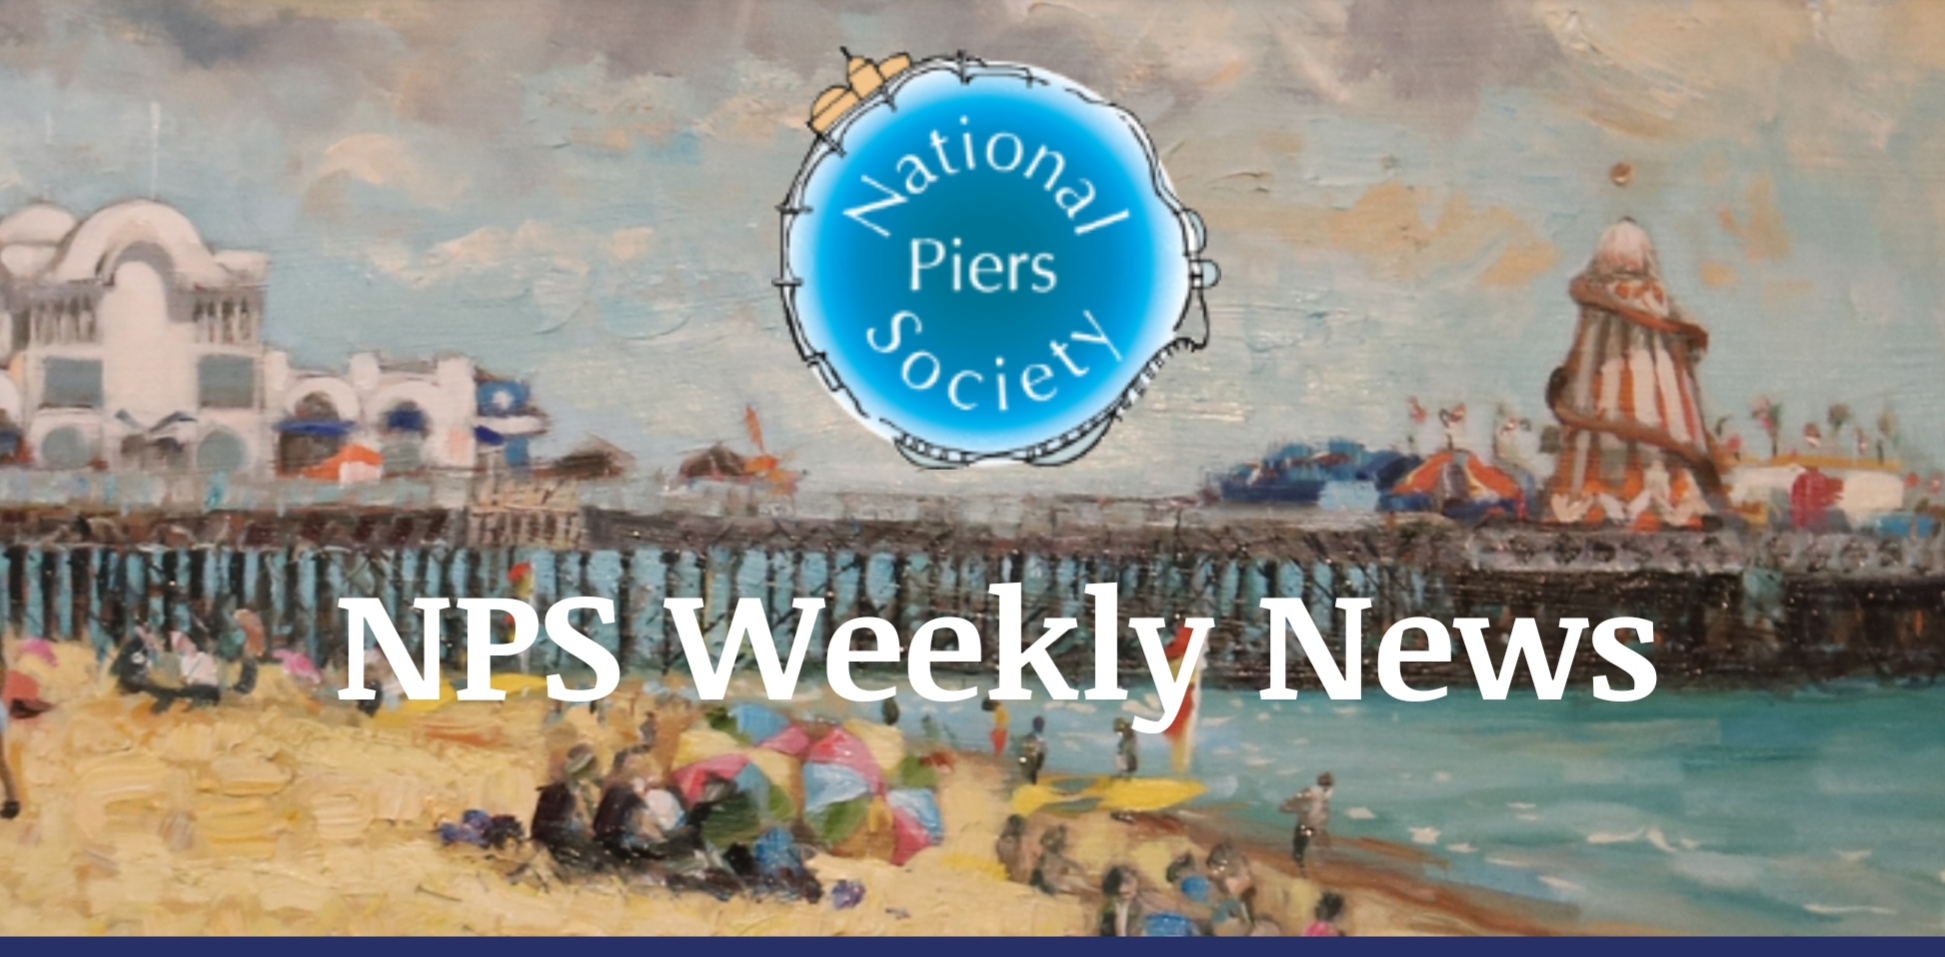 National Piers Association